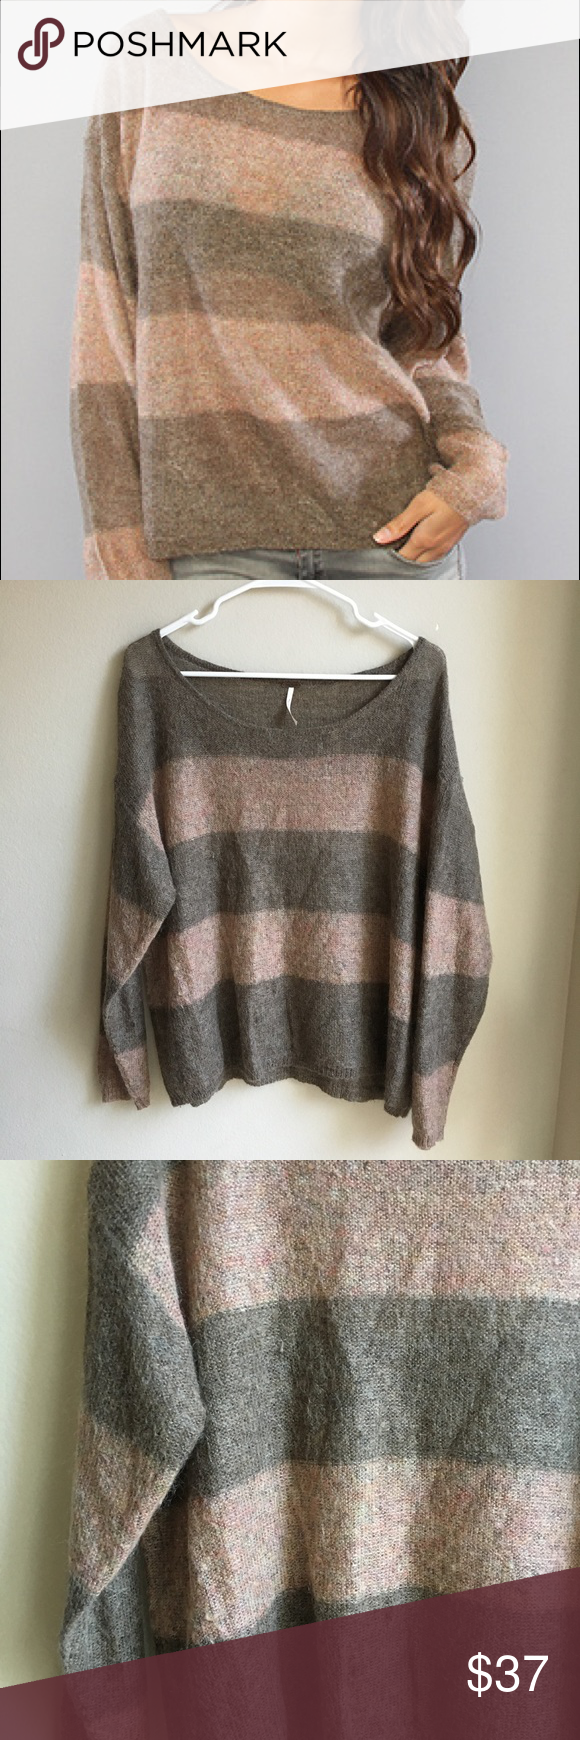 Free People Lightweight Knit Oversized Sweater Excellent Condition ...